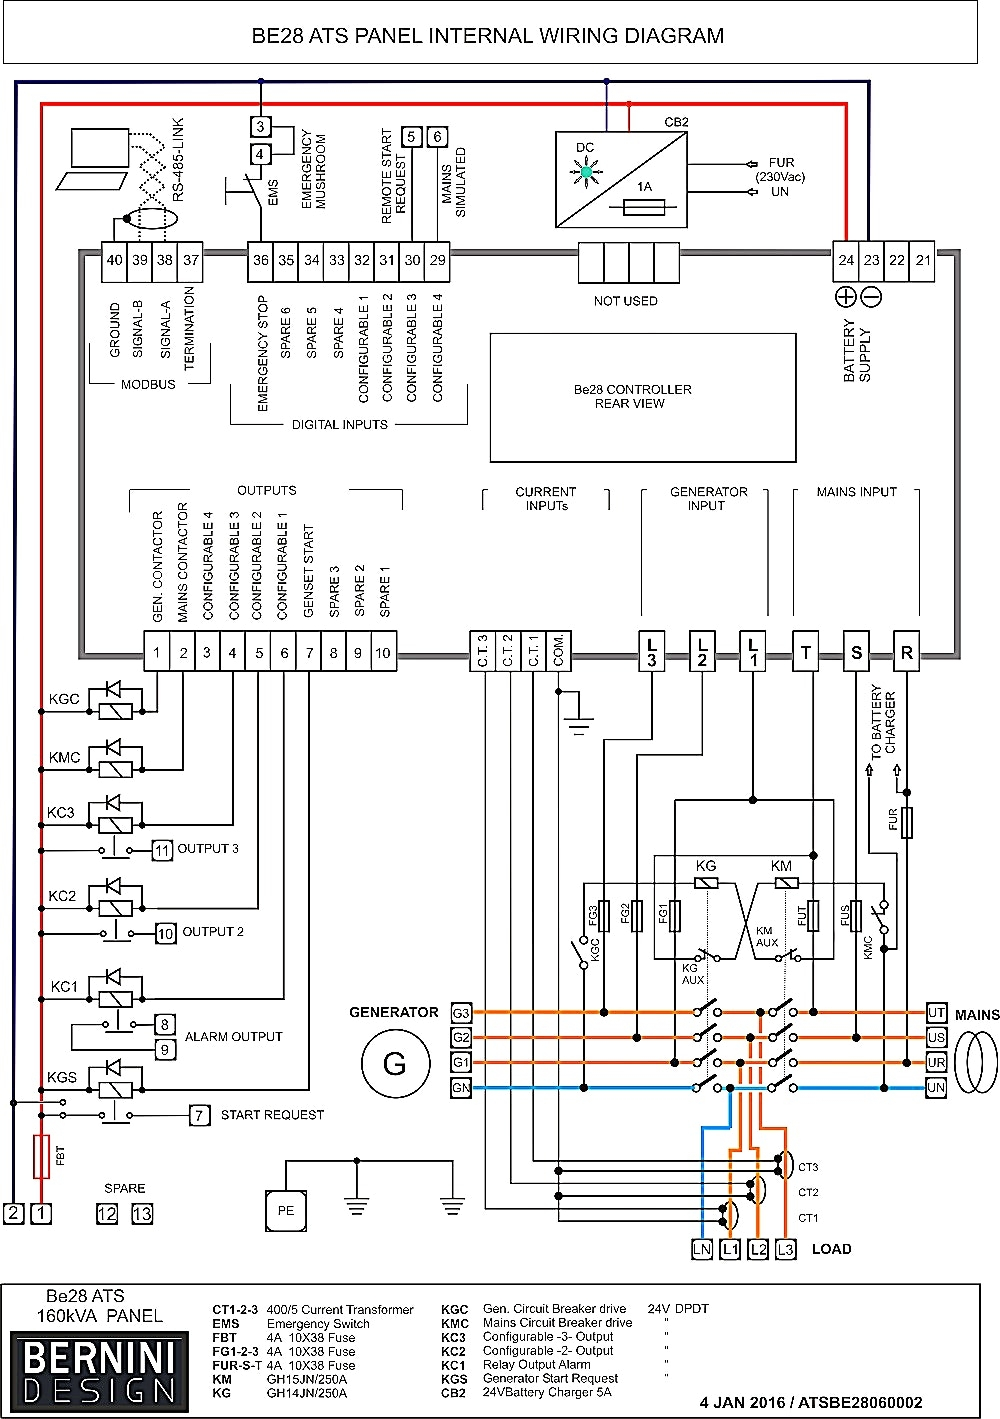 ats wiring diagram for standby generator Download-generac ats wiring diagram Collection Generac Automatic Transfer Switch Wiring Diagram Simple Design Between Solargenerator DOWNLOAD Wiring Diagram 2-g